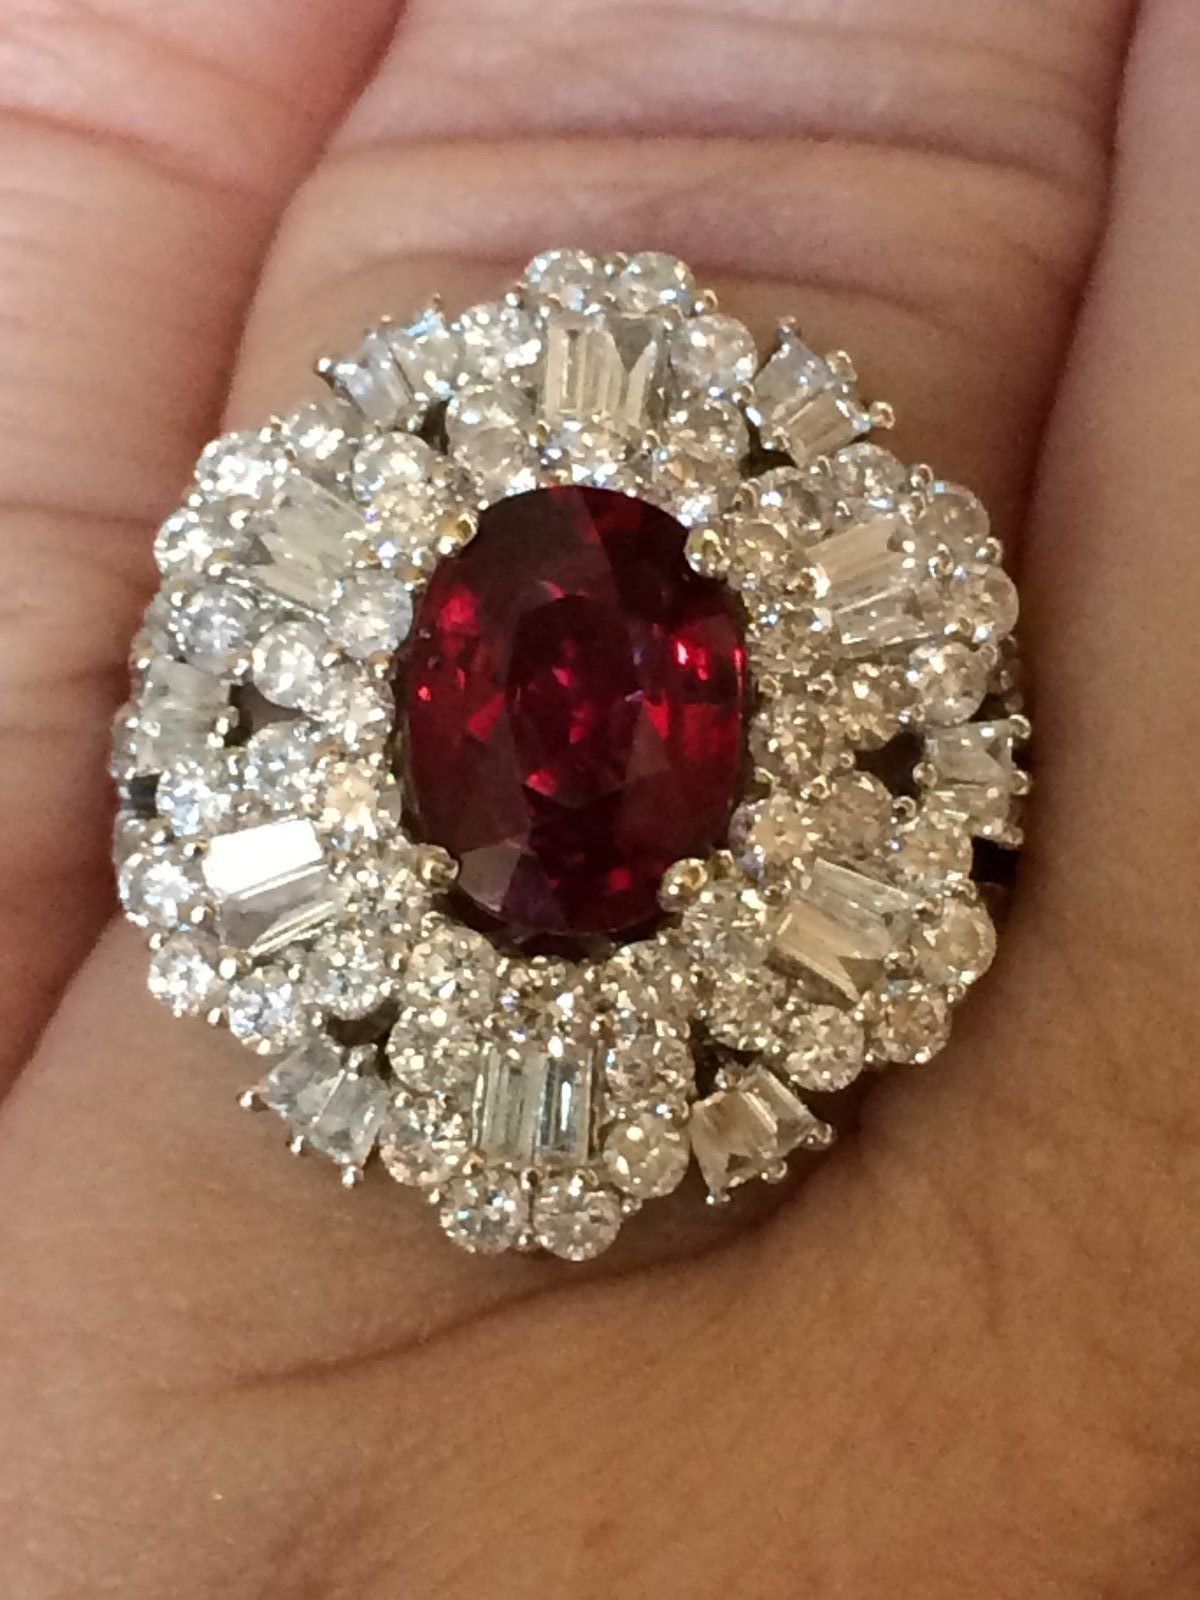 K gold ct unheated gia certified no heat vs vivid red ruby